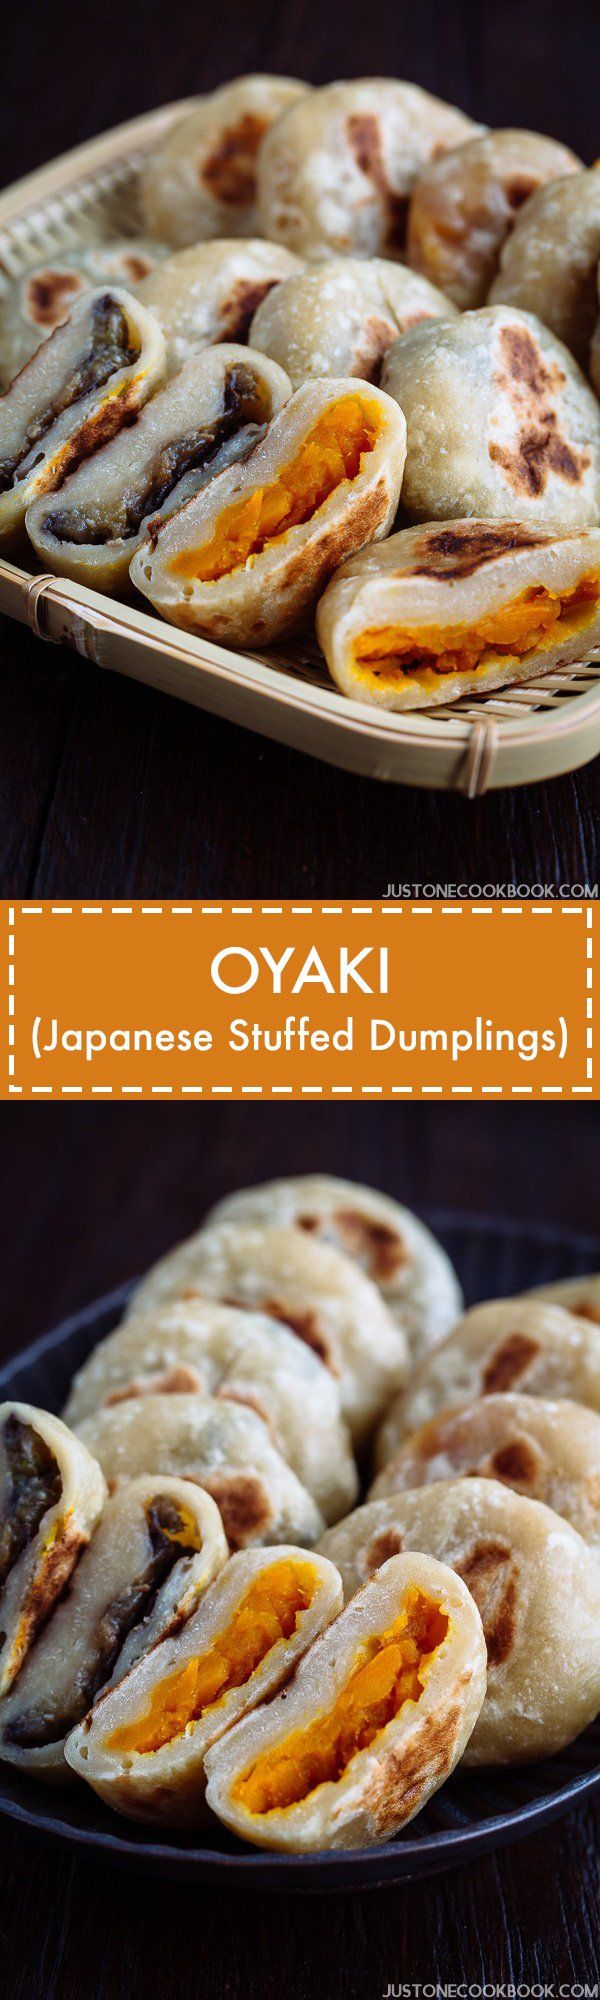 Oyaki (Japanese Stuffed Dumplings) おやき - Stuffed with sweet kabocha squash and miso-glazed eggplant, these Oyaki Japanese dumplings are a popular snack in Nagano Prefecture in central Japan. #Oyaki #Kabocha #miso #eggplant #おやき #Dumplings | Easy Japanese Recipes at JustOneCookbook.com